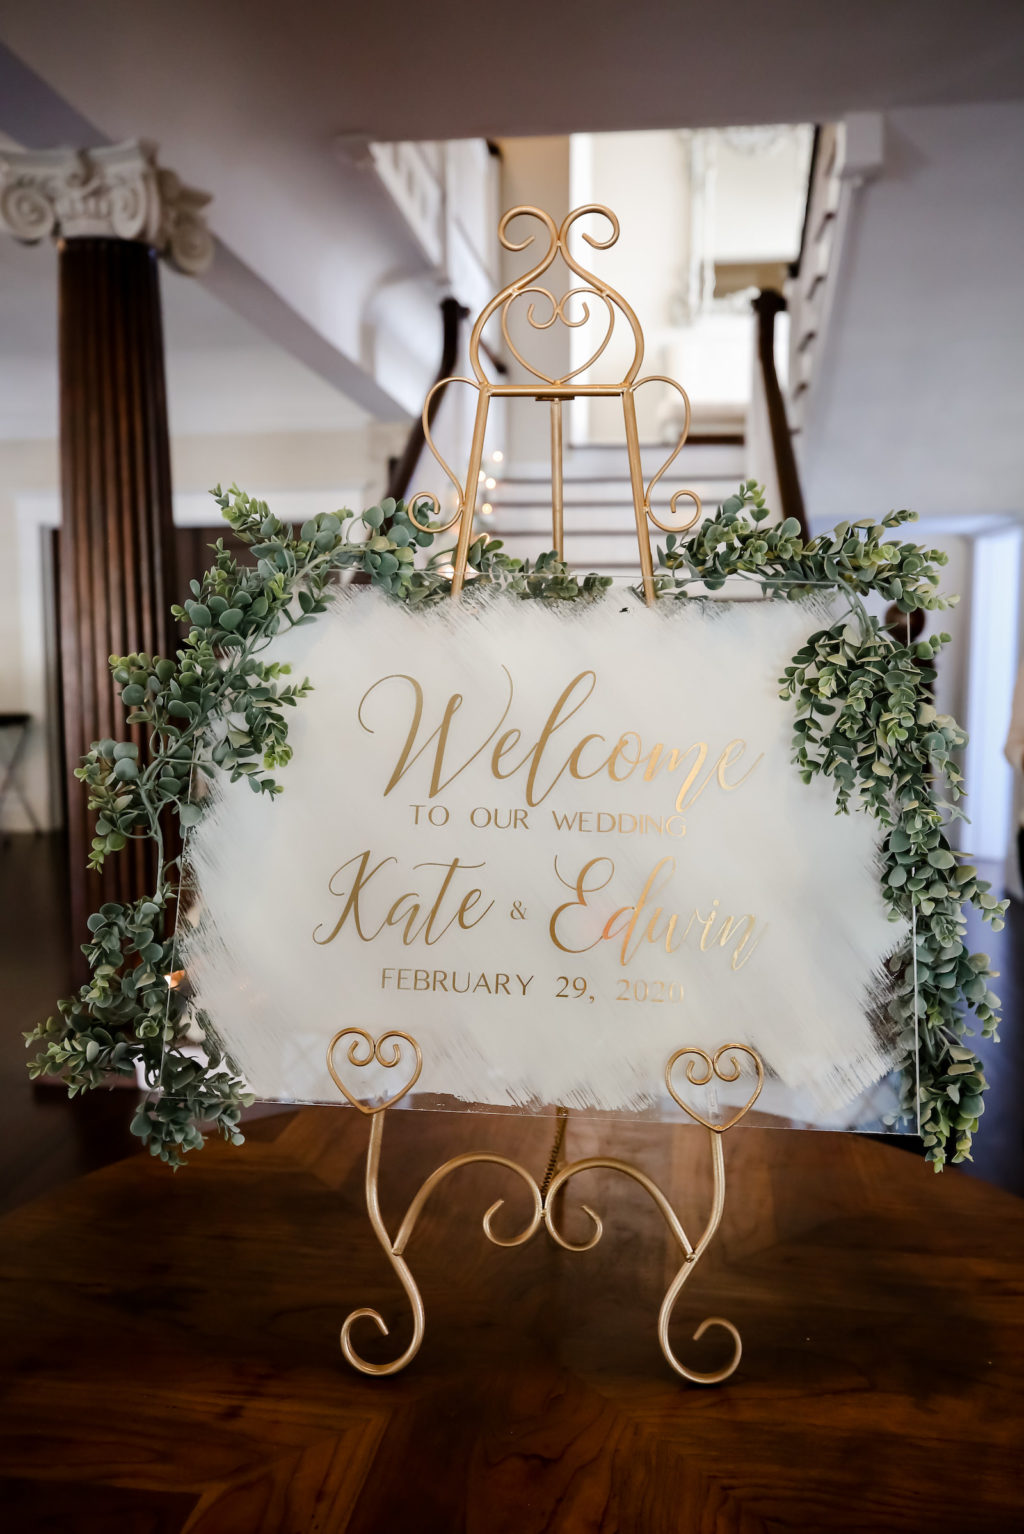 Classic Modern Acrylic and Gold Wedding Welcome Sign with Greenery Garland | Tampa Bay Wedding Photographer Lifelong Photography Studio | Wedding Planner Core Concepts | Wedding Rentals Kate Ryan Event Rentals | A Chair Affair